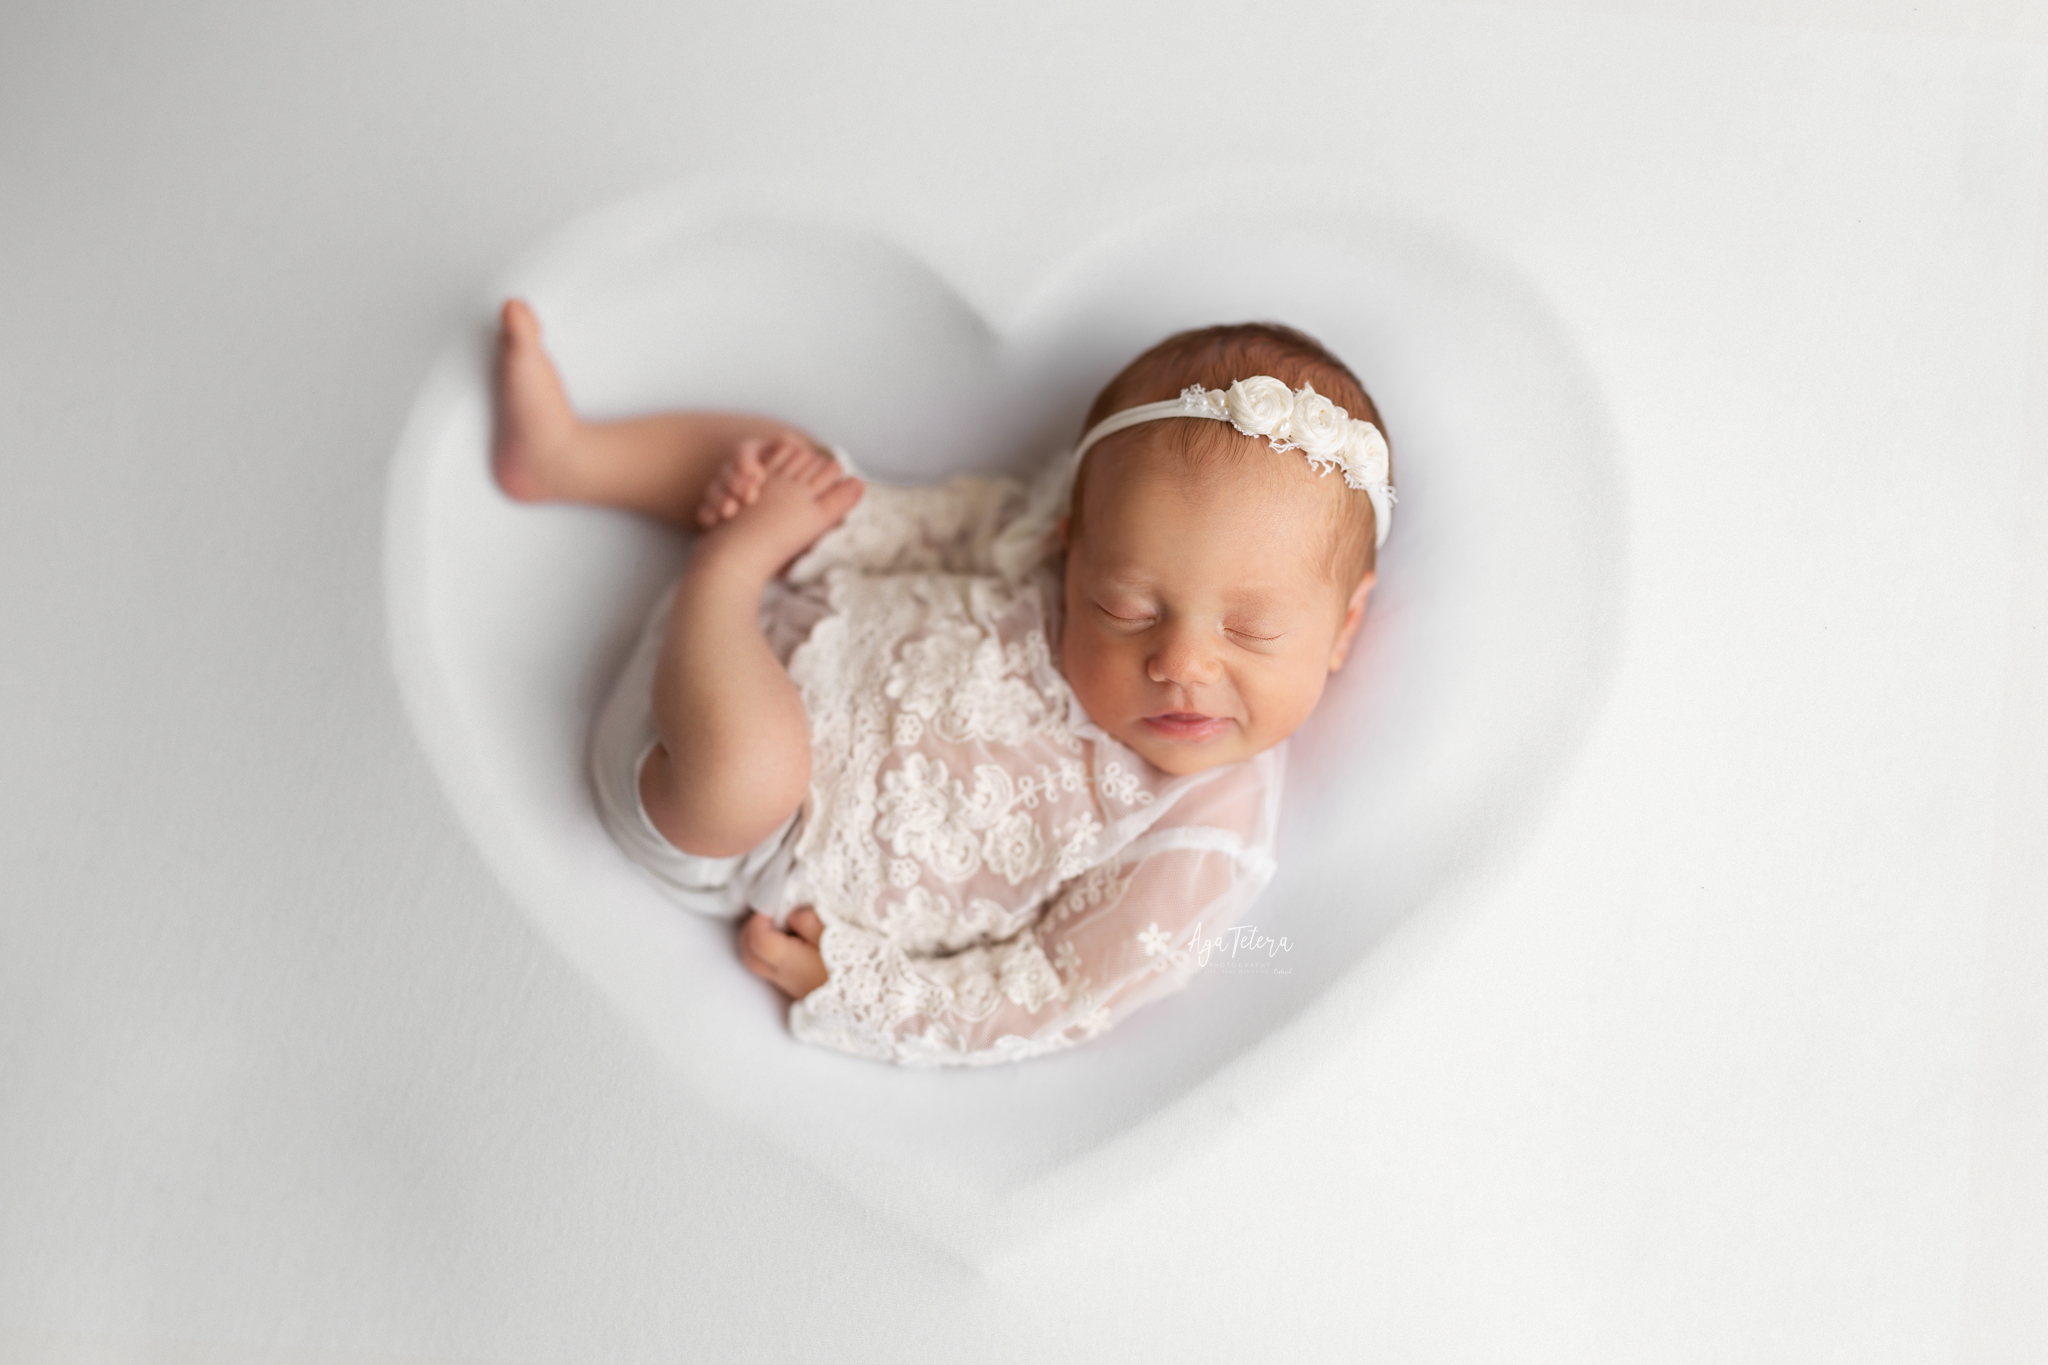 Newborn photography Leicester, Baby